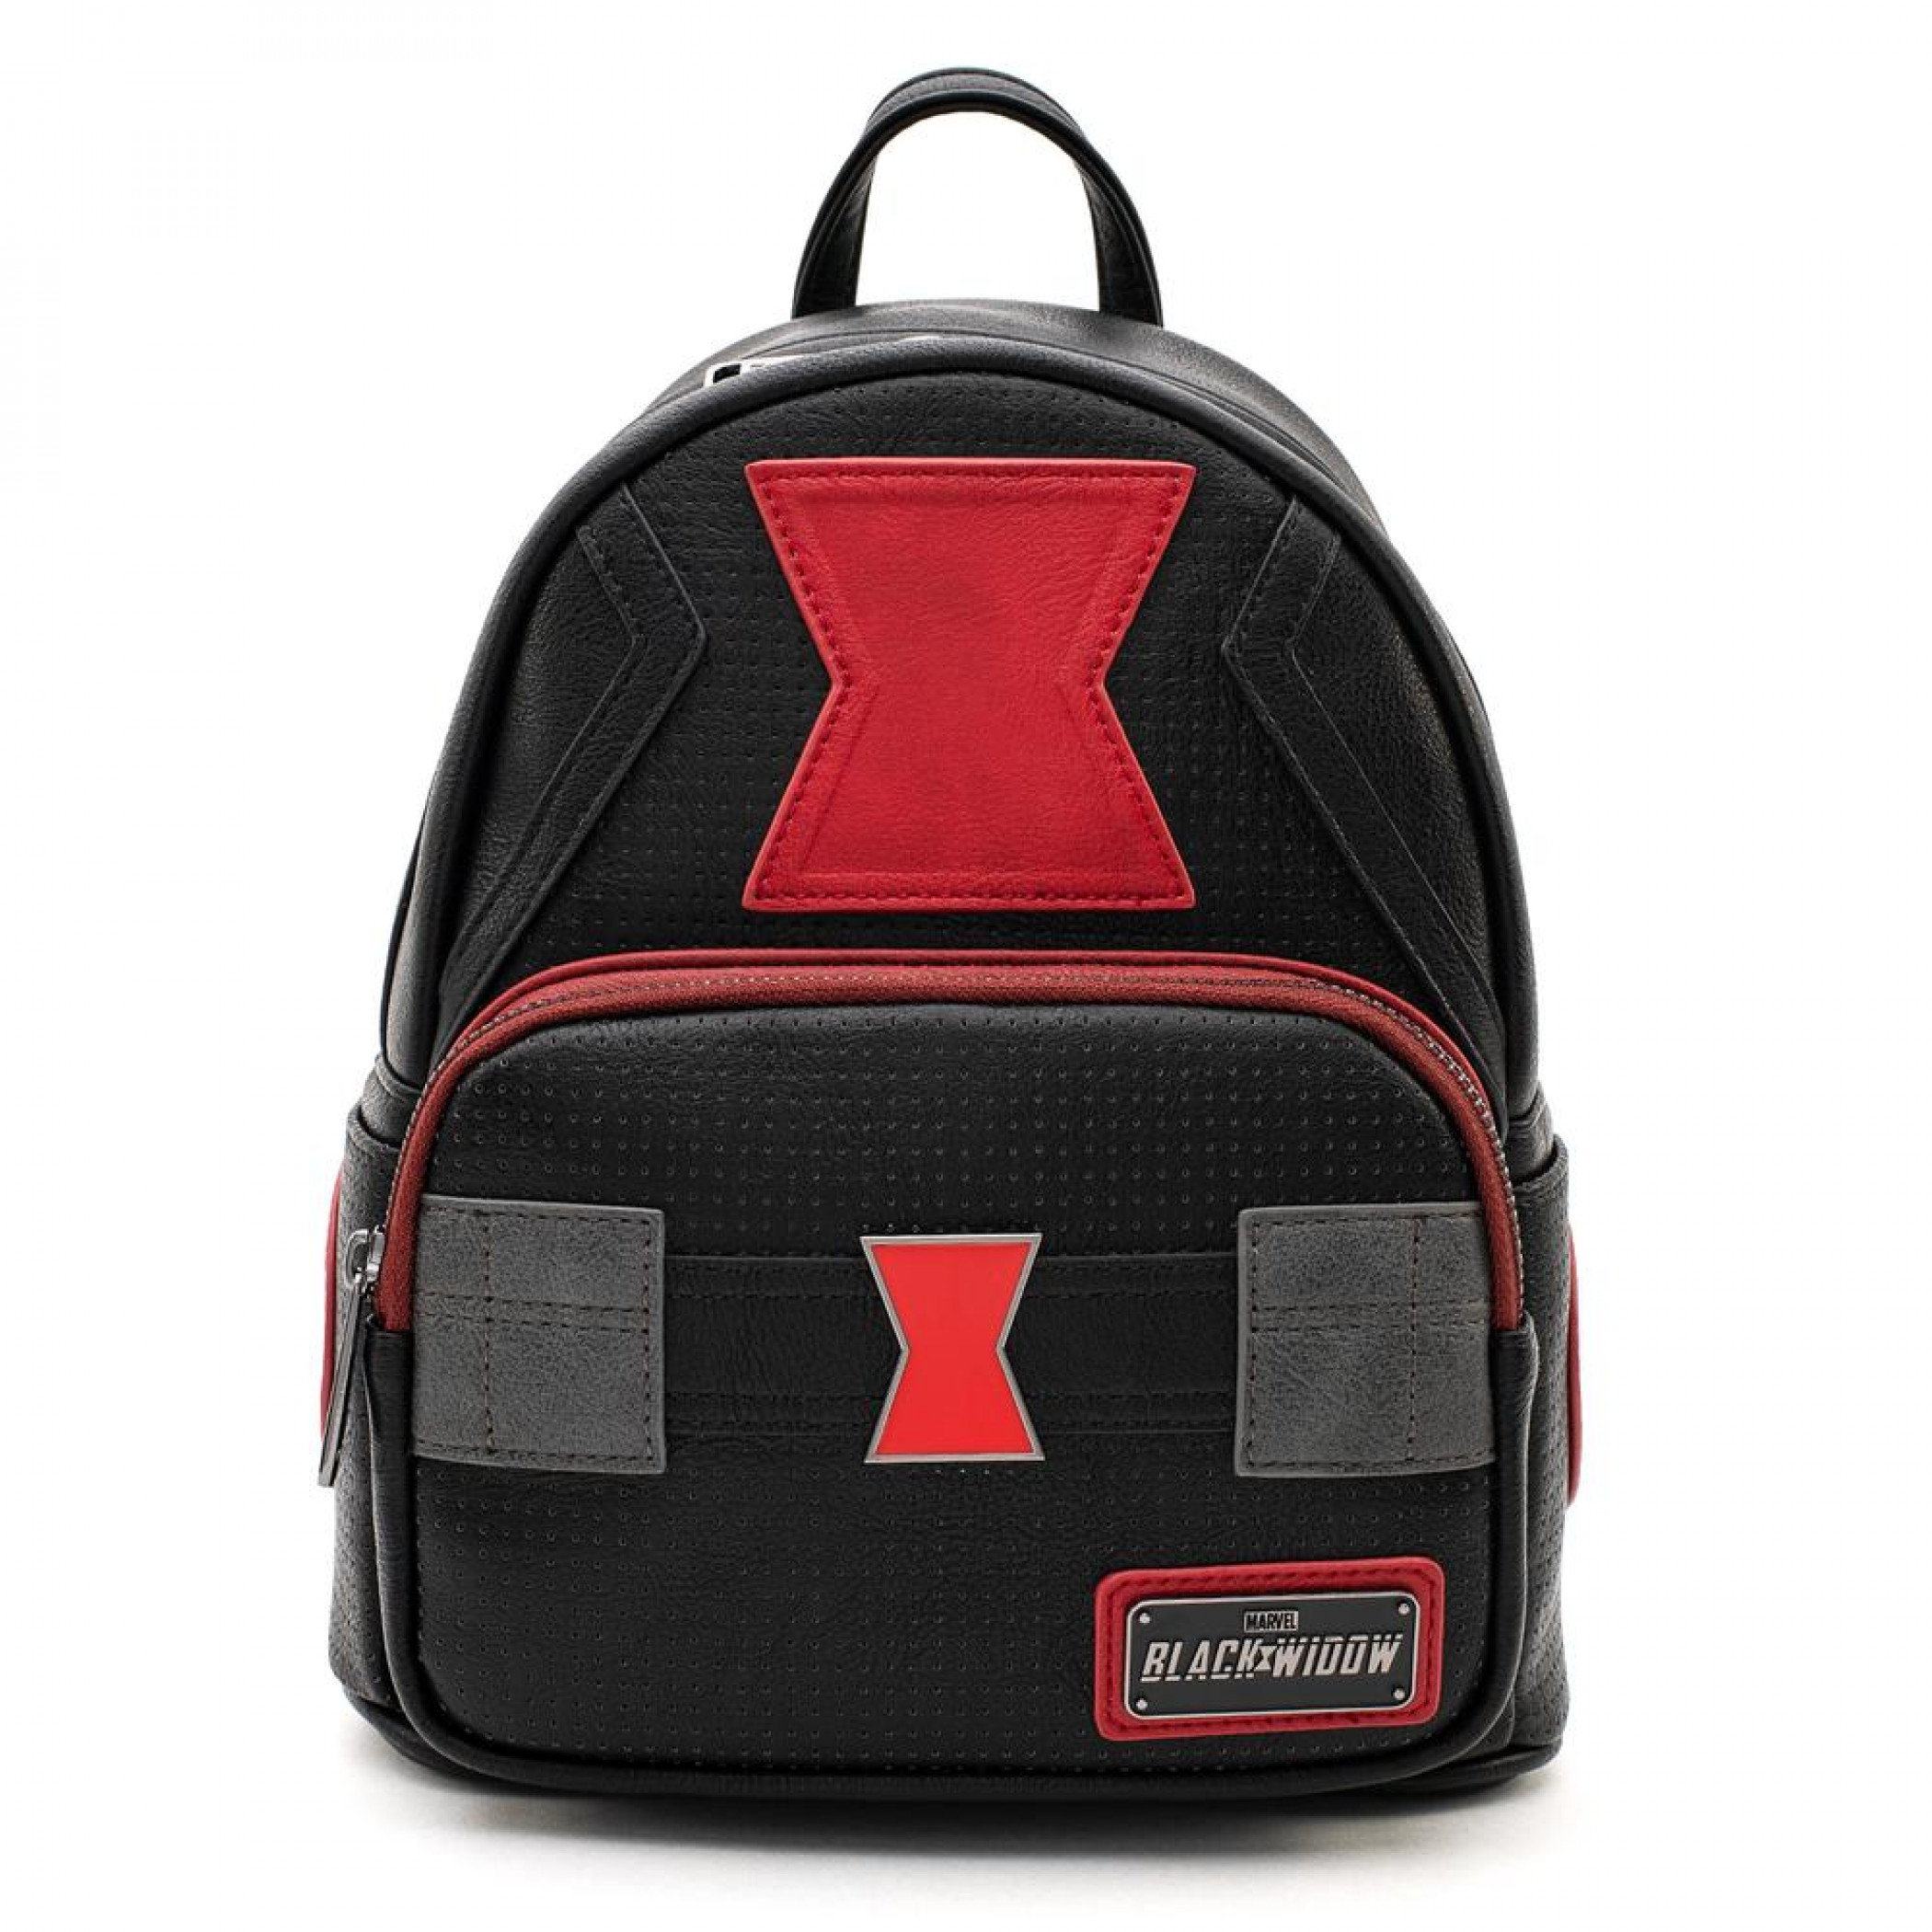 Marvel Black Widow Mini Backpack by Loungefly